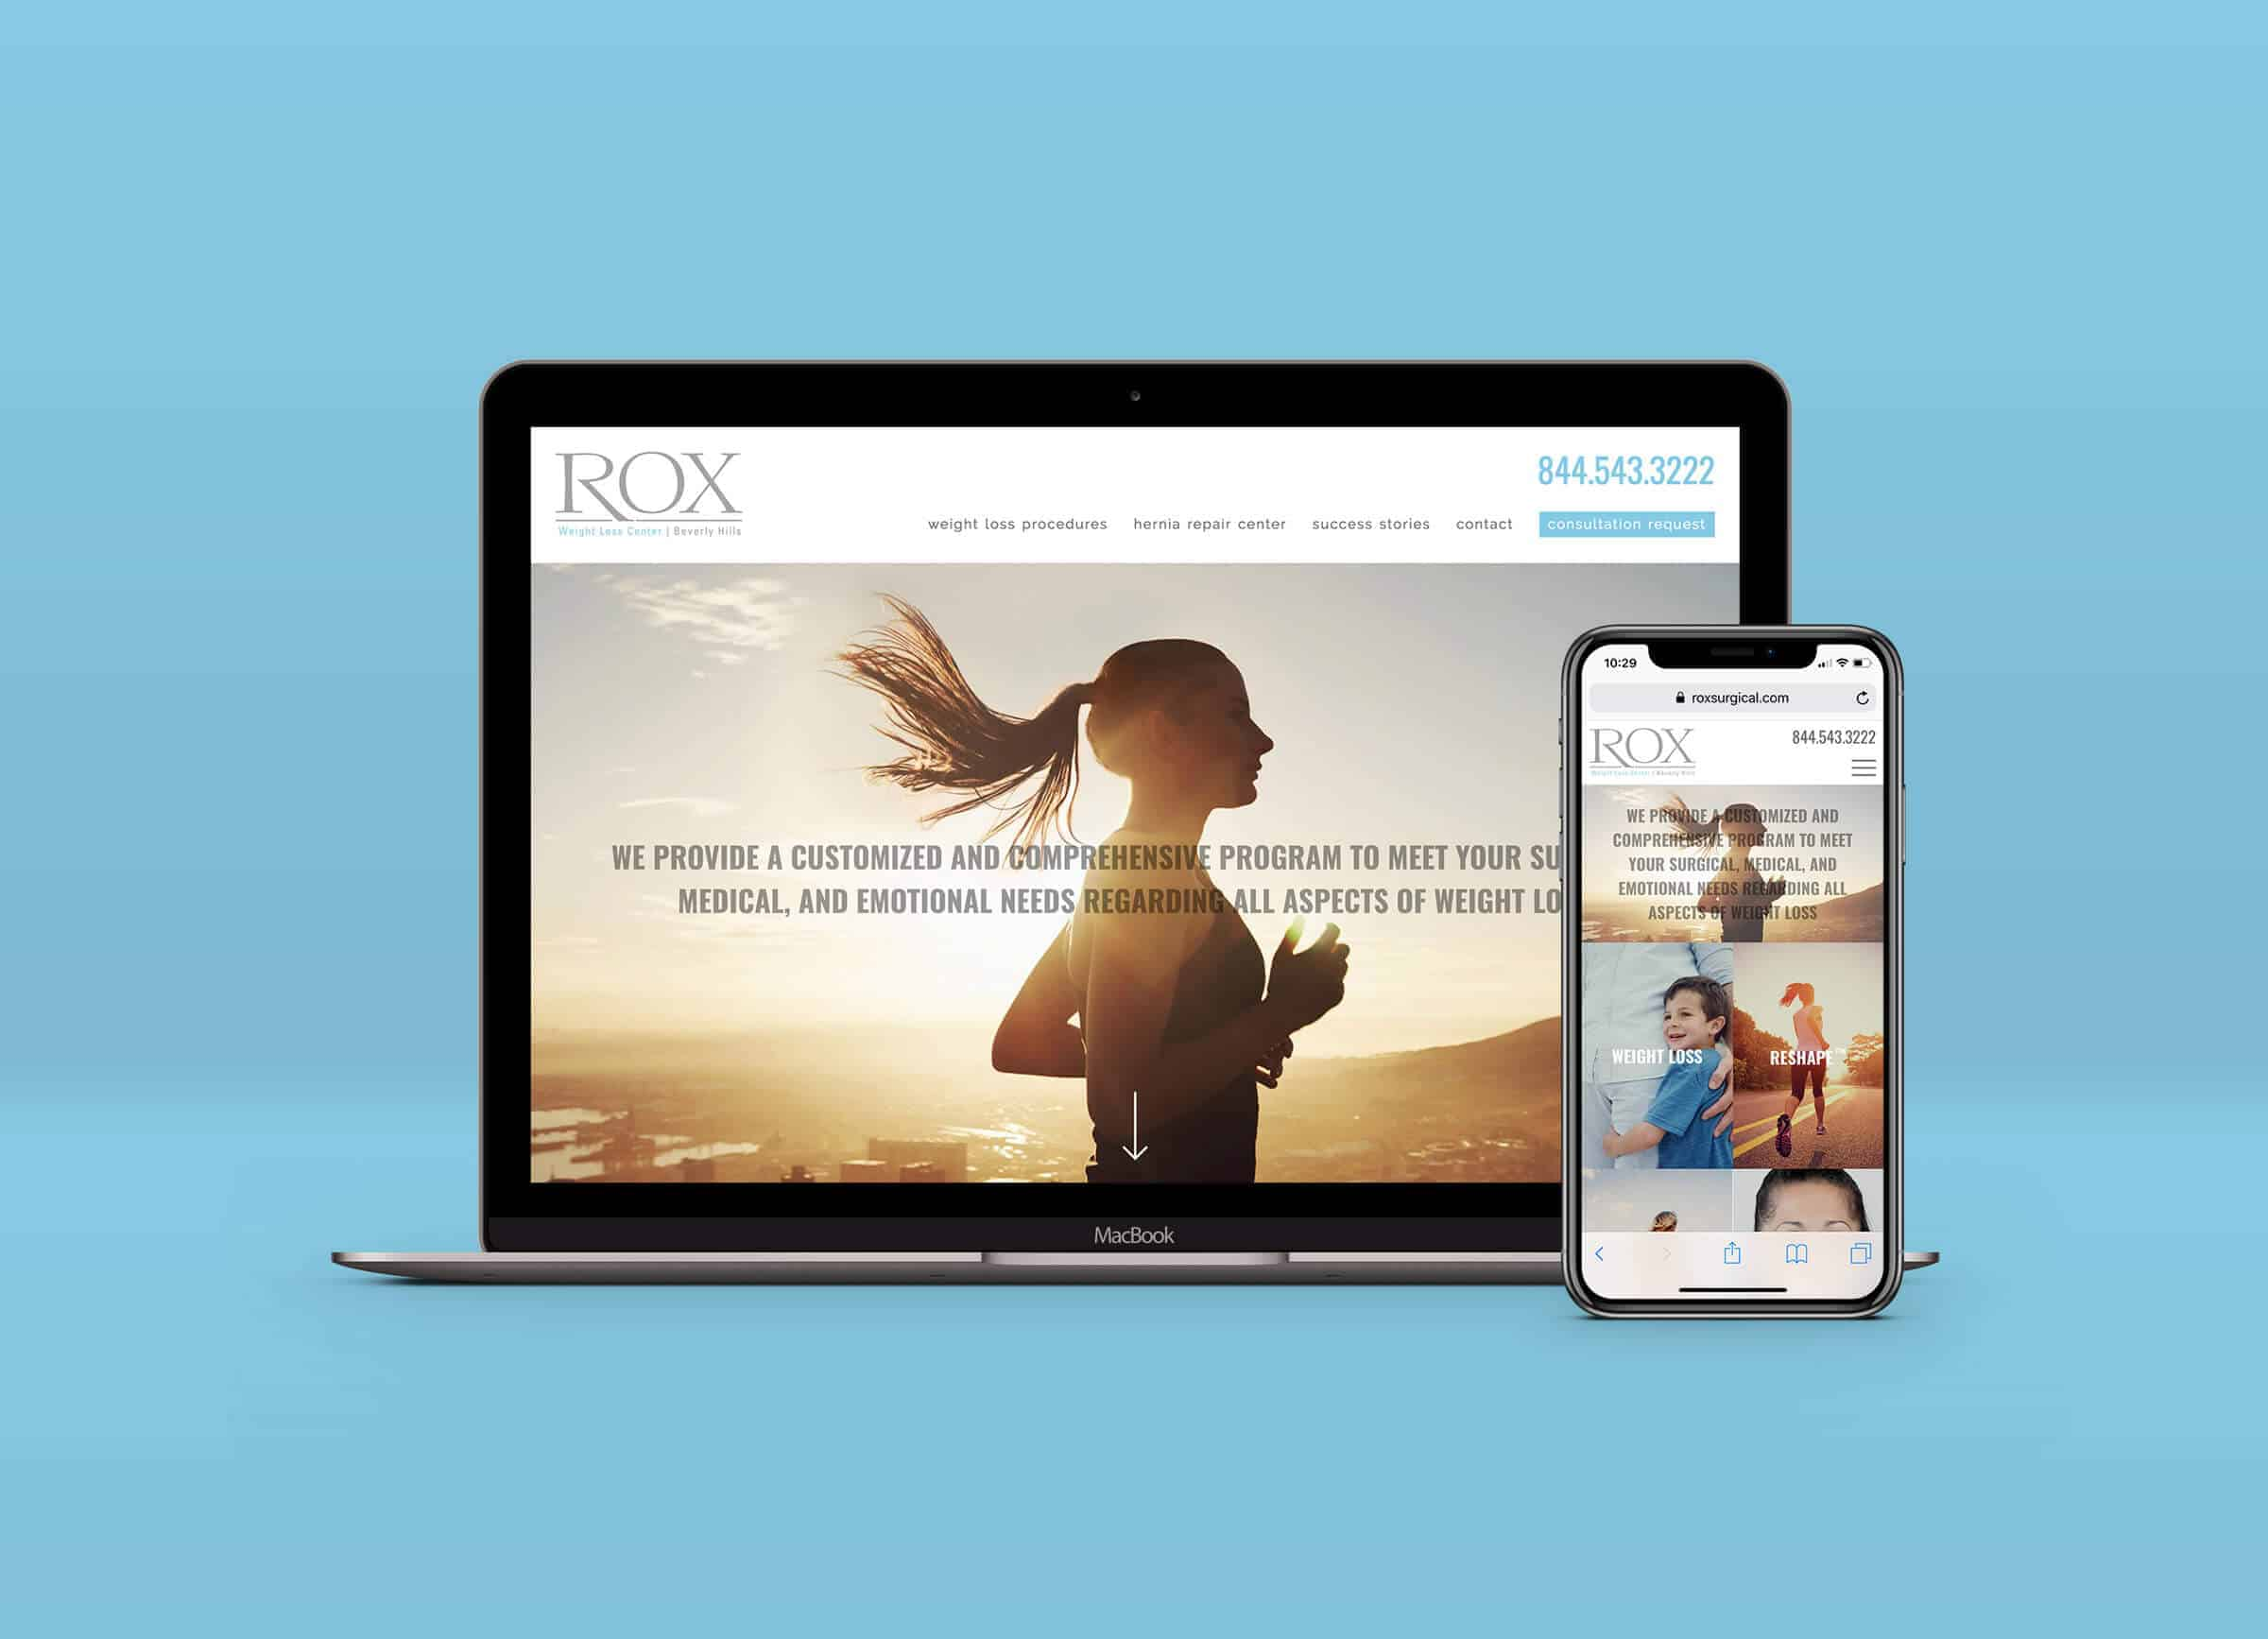 rox surgical center beverly hills homepage